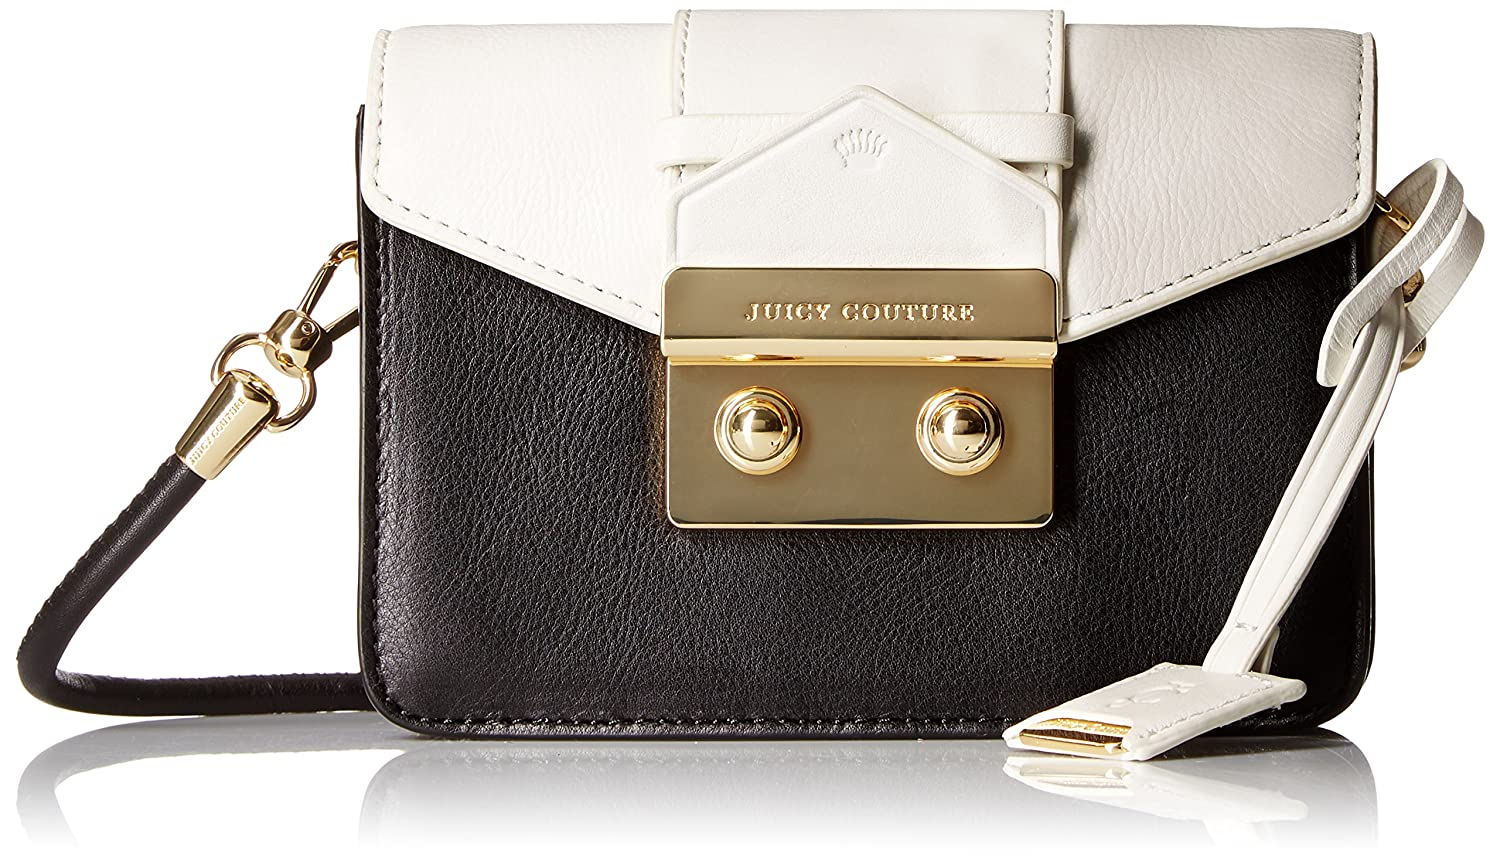 28307bd0c0b1 Amazon.com  Juicy Couture Black Label Mini Crossbody Bag with Envelop Flap  with Gold Latch with A Top Handle Option